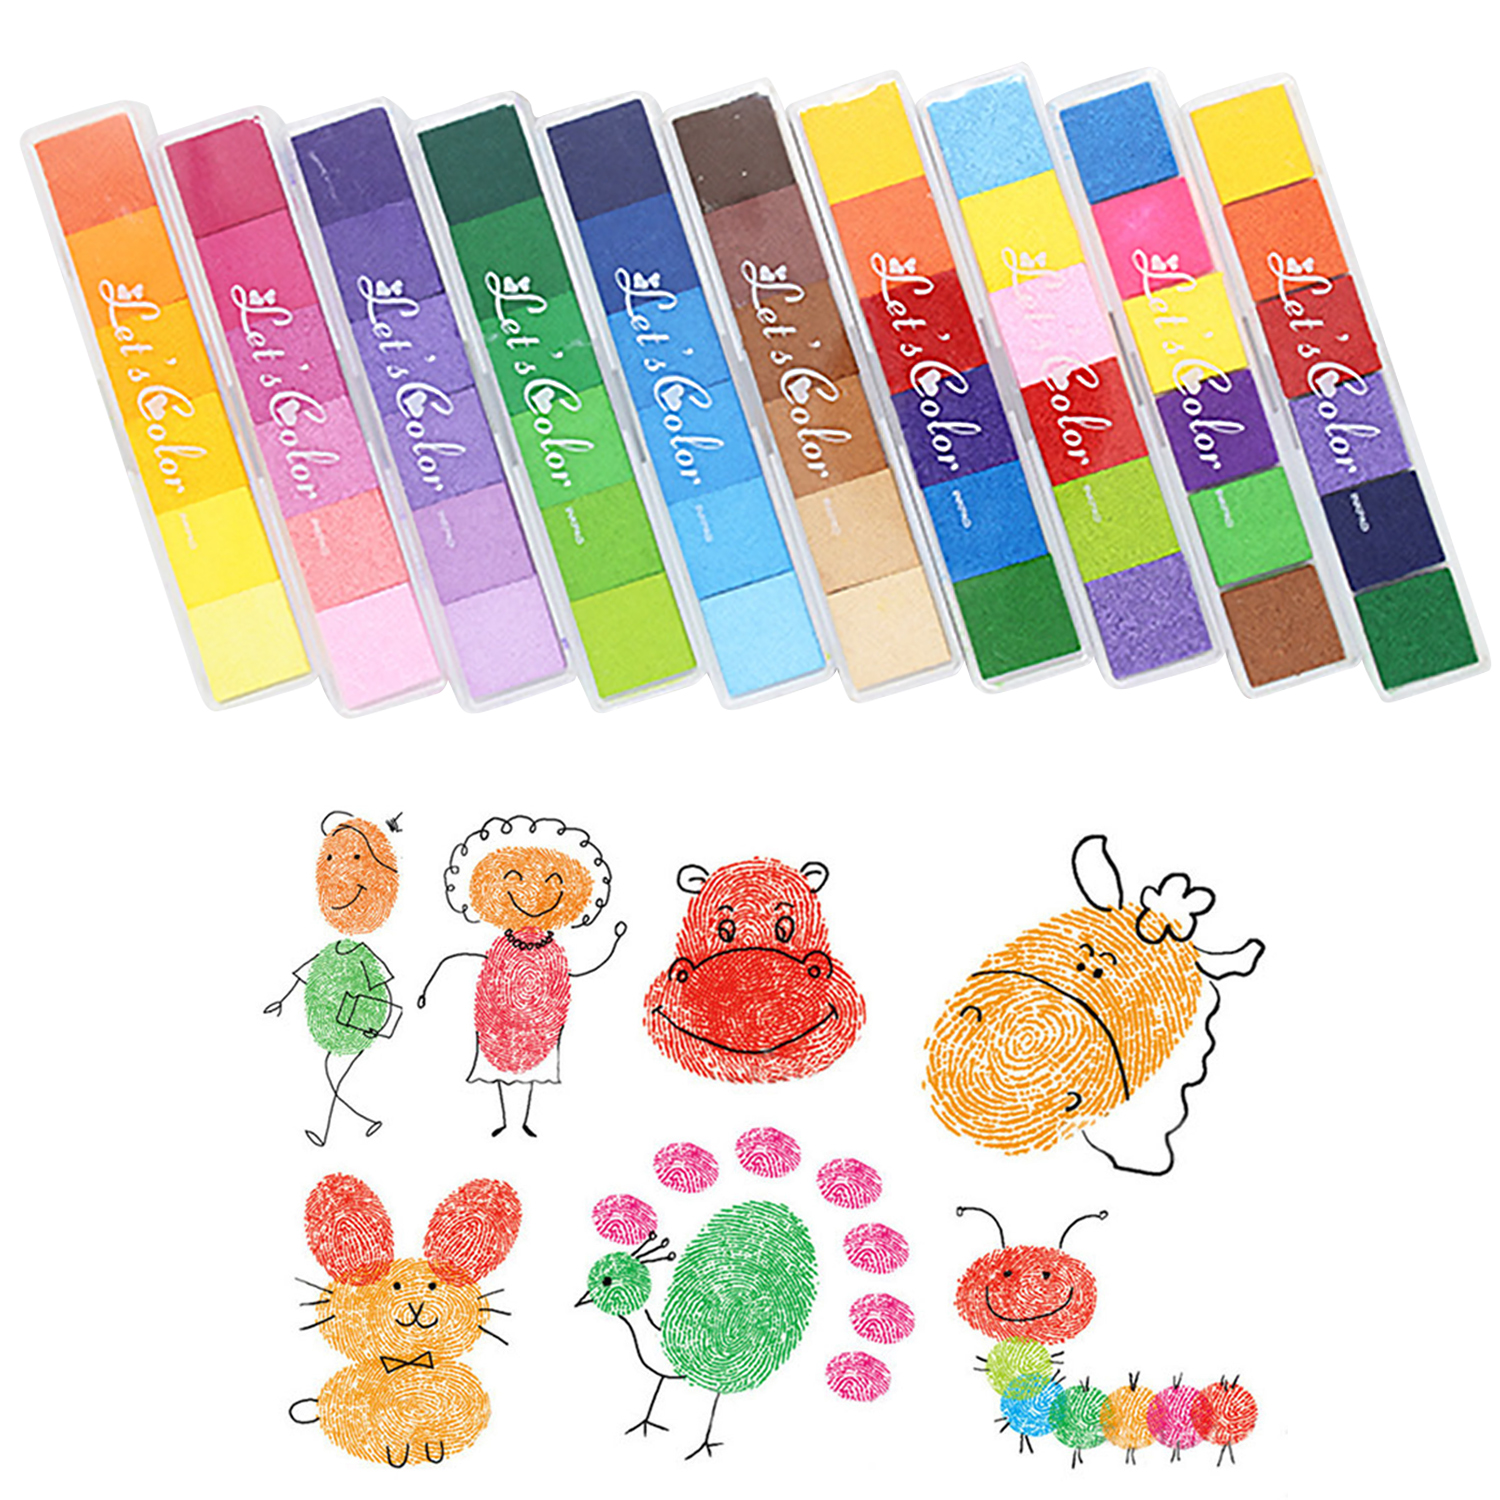 Kids Washable Finger Painting Inkpad 6pcs Gradient Colors+4PCS Colorful Graffiti Cushion Stamp DIY Fingerprinting Drawing Toy